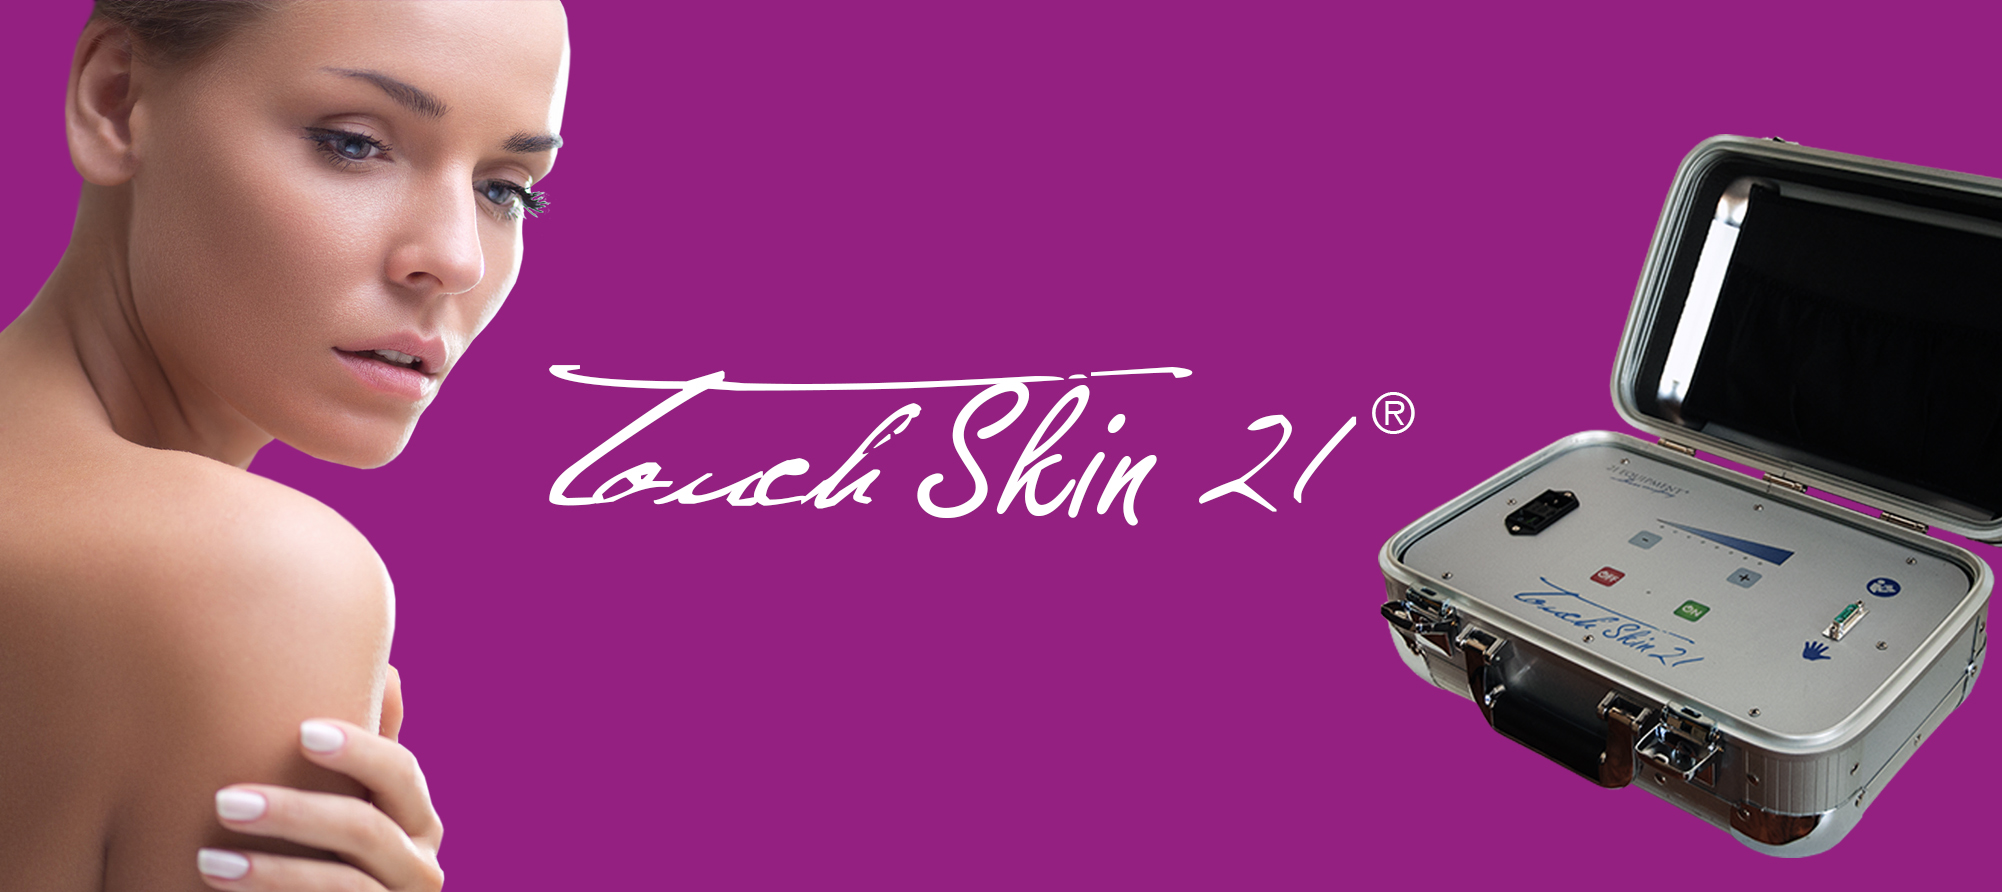 Touch Skin 21®